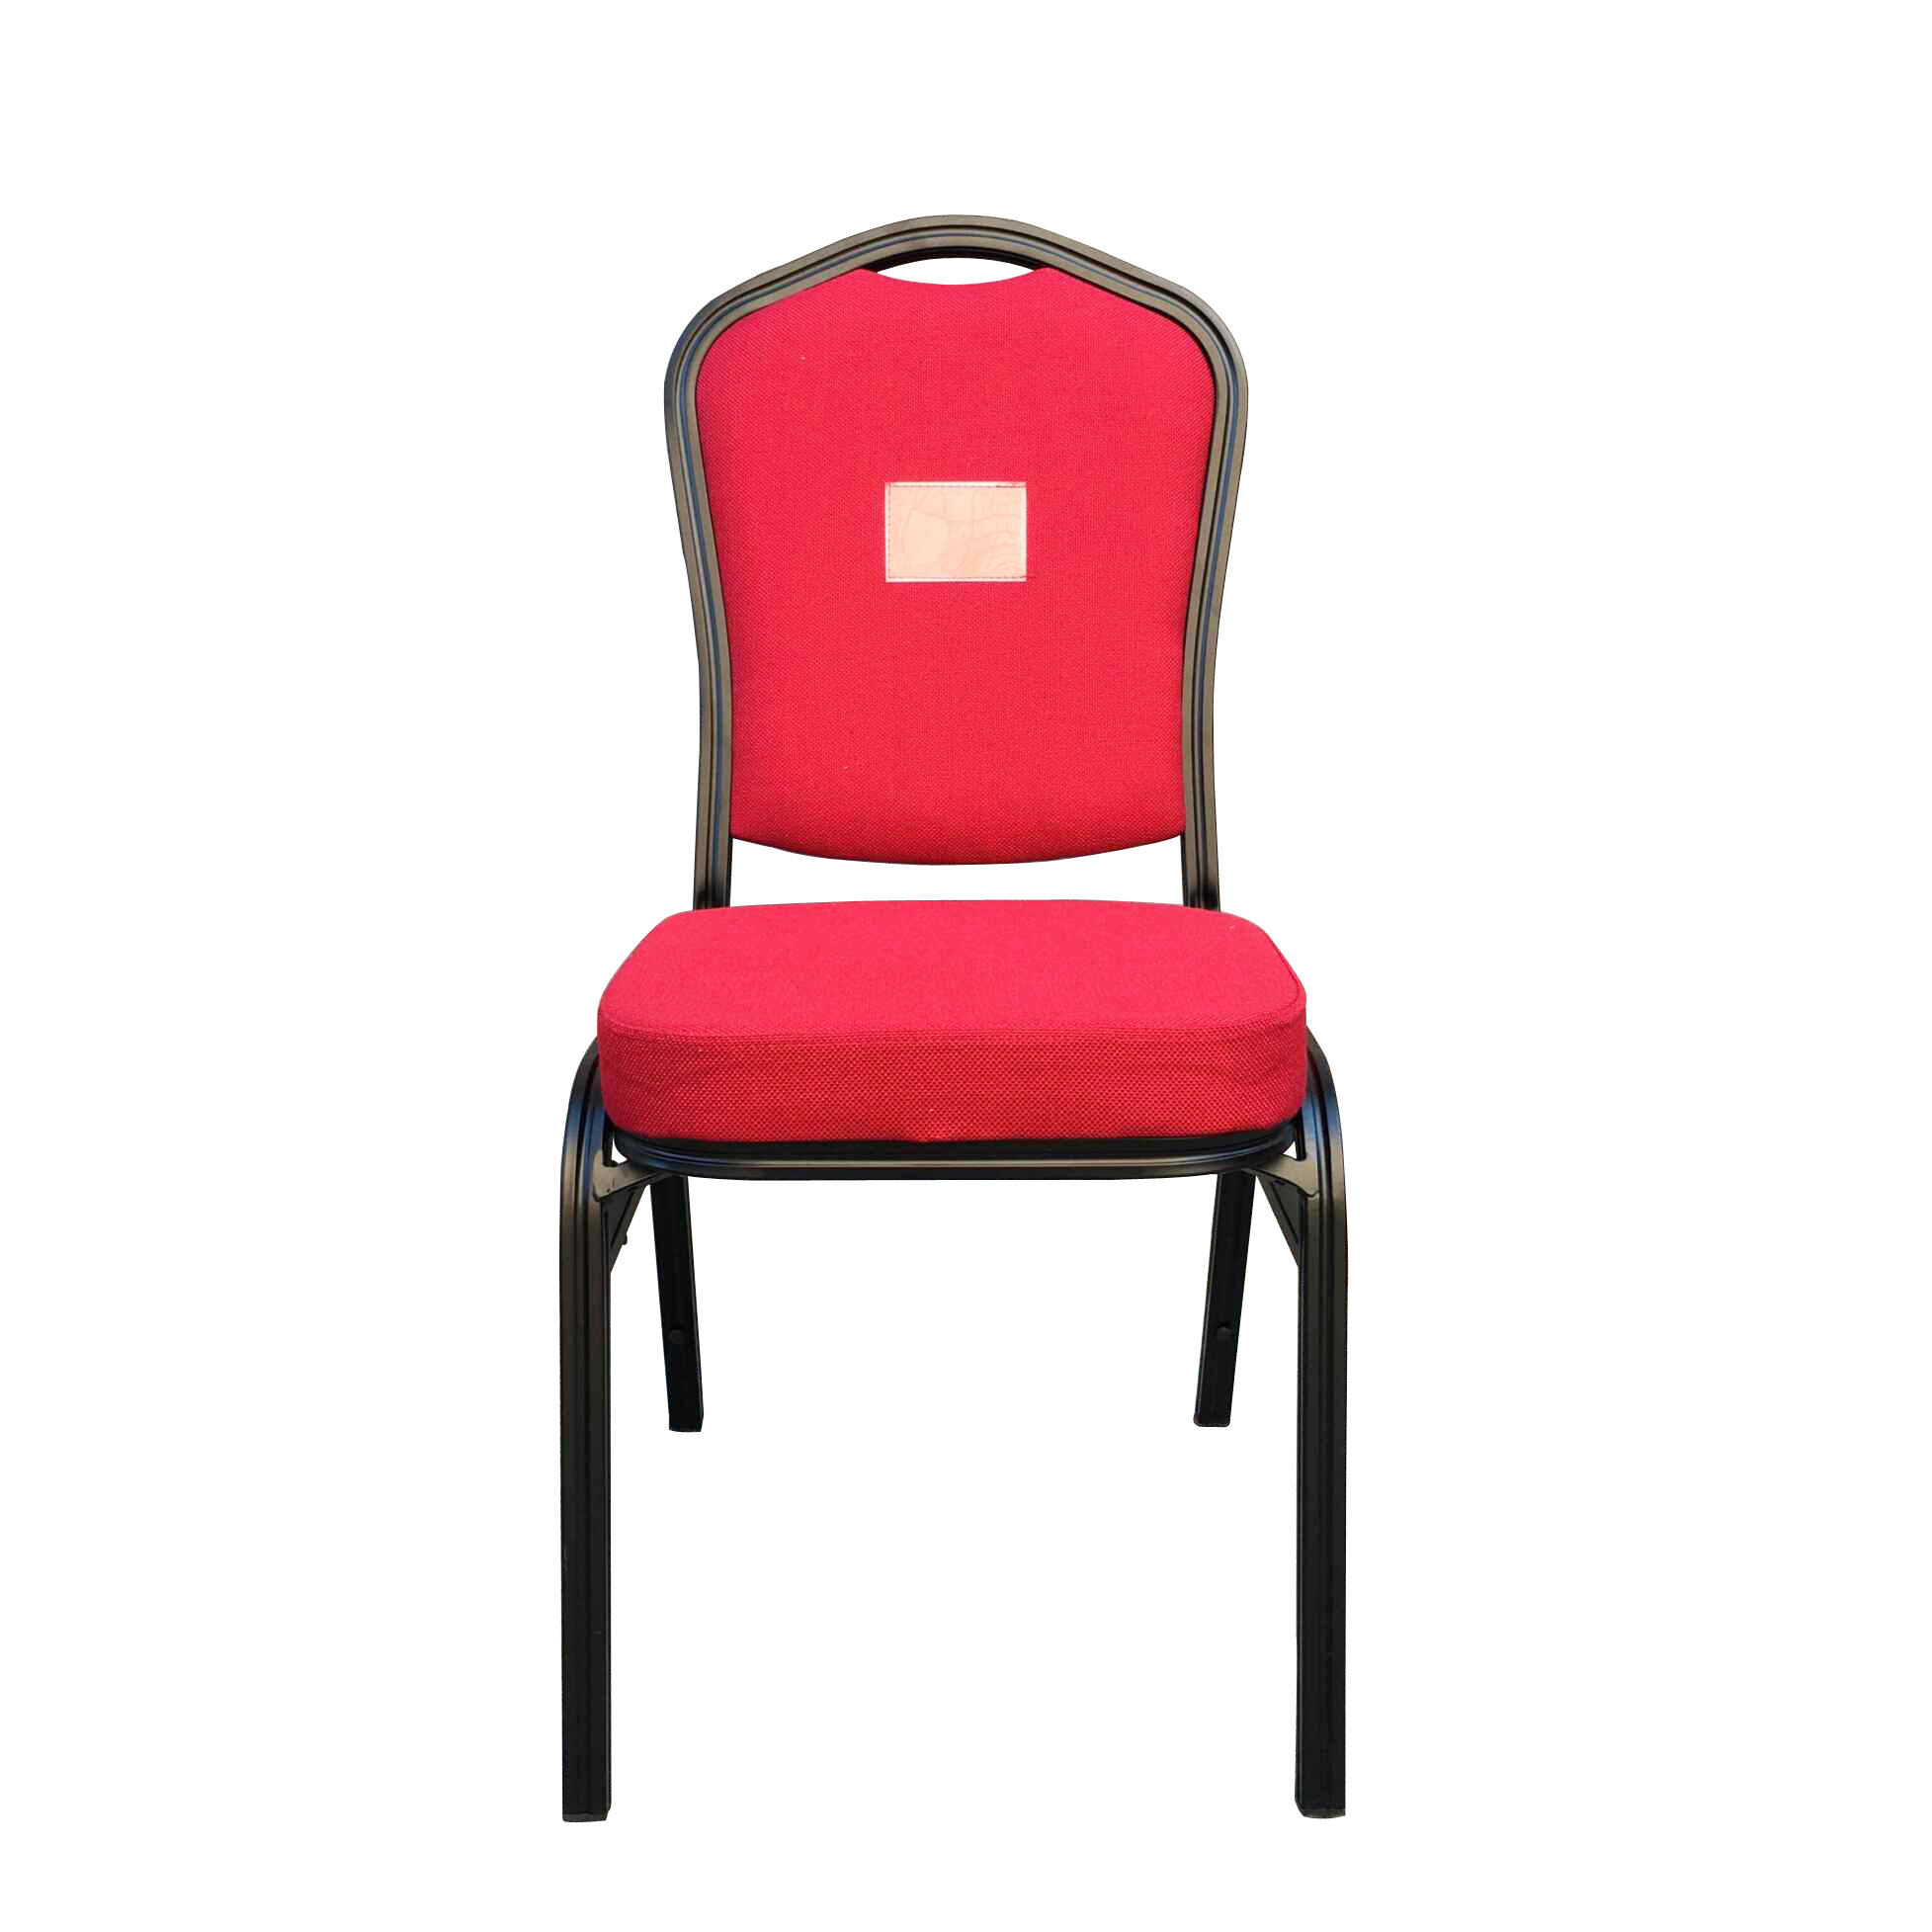 Factory Price For School Lecture Hall Chairs - Banquet Chairs Wholesale SF-L20 – Jiangchang Furniture